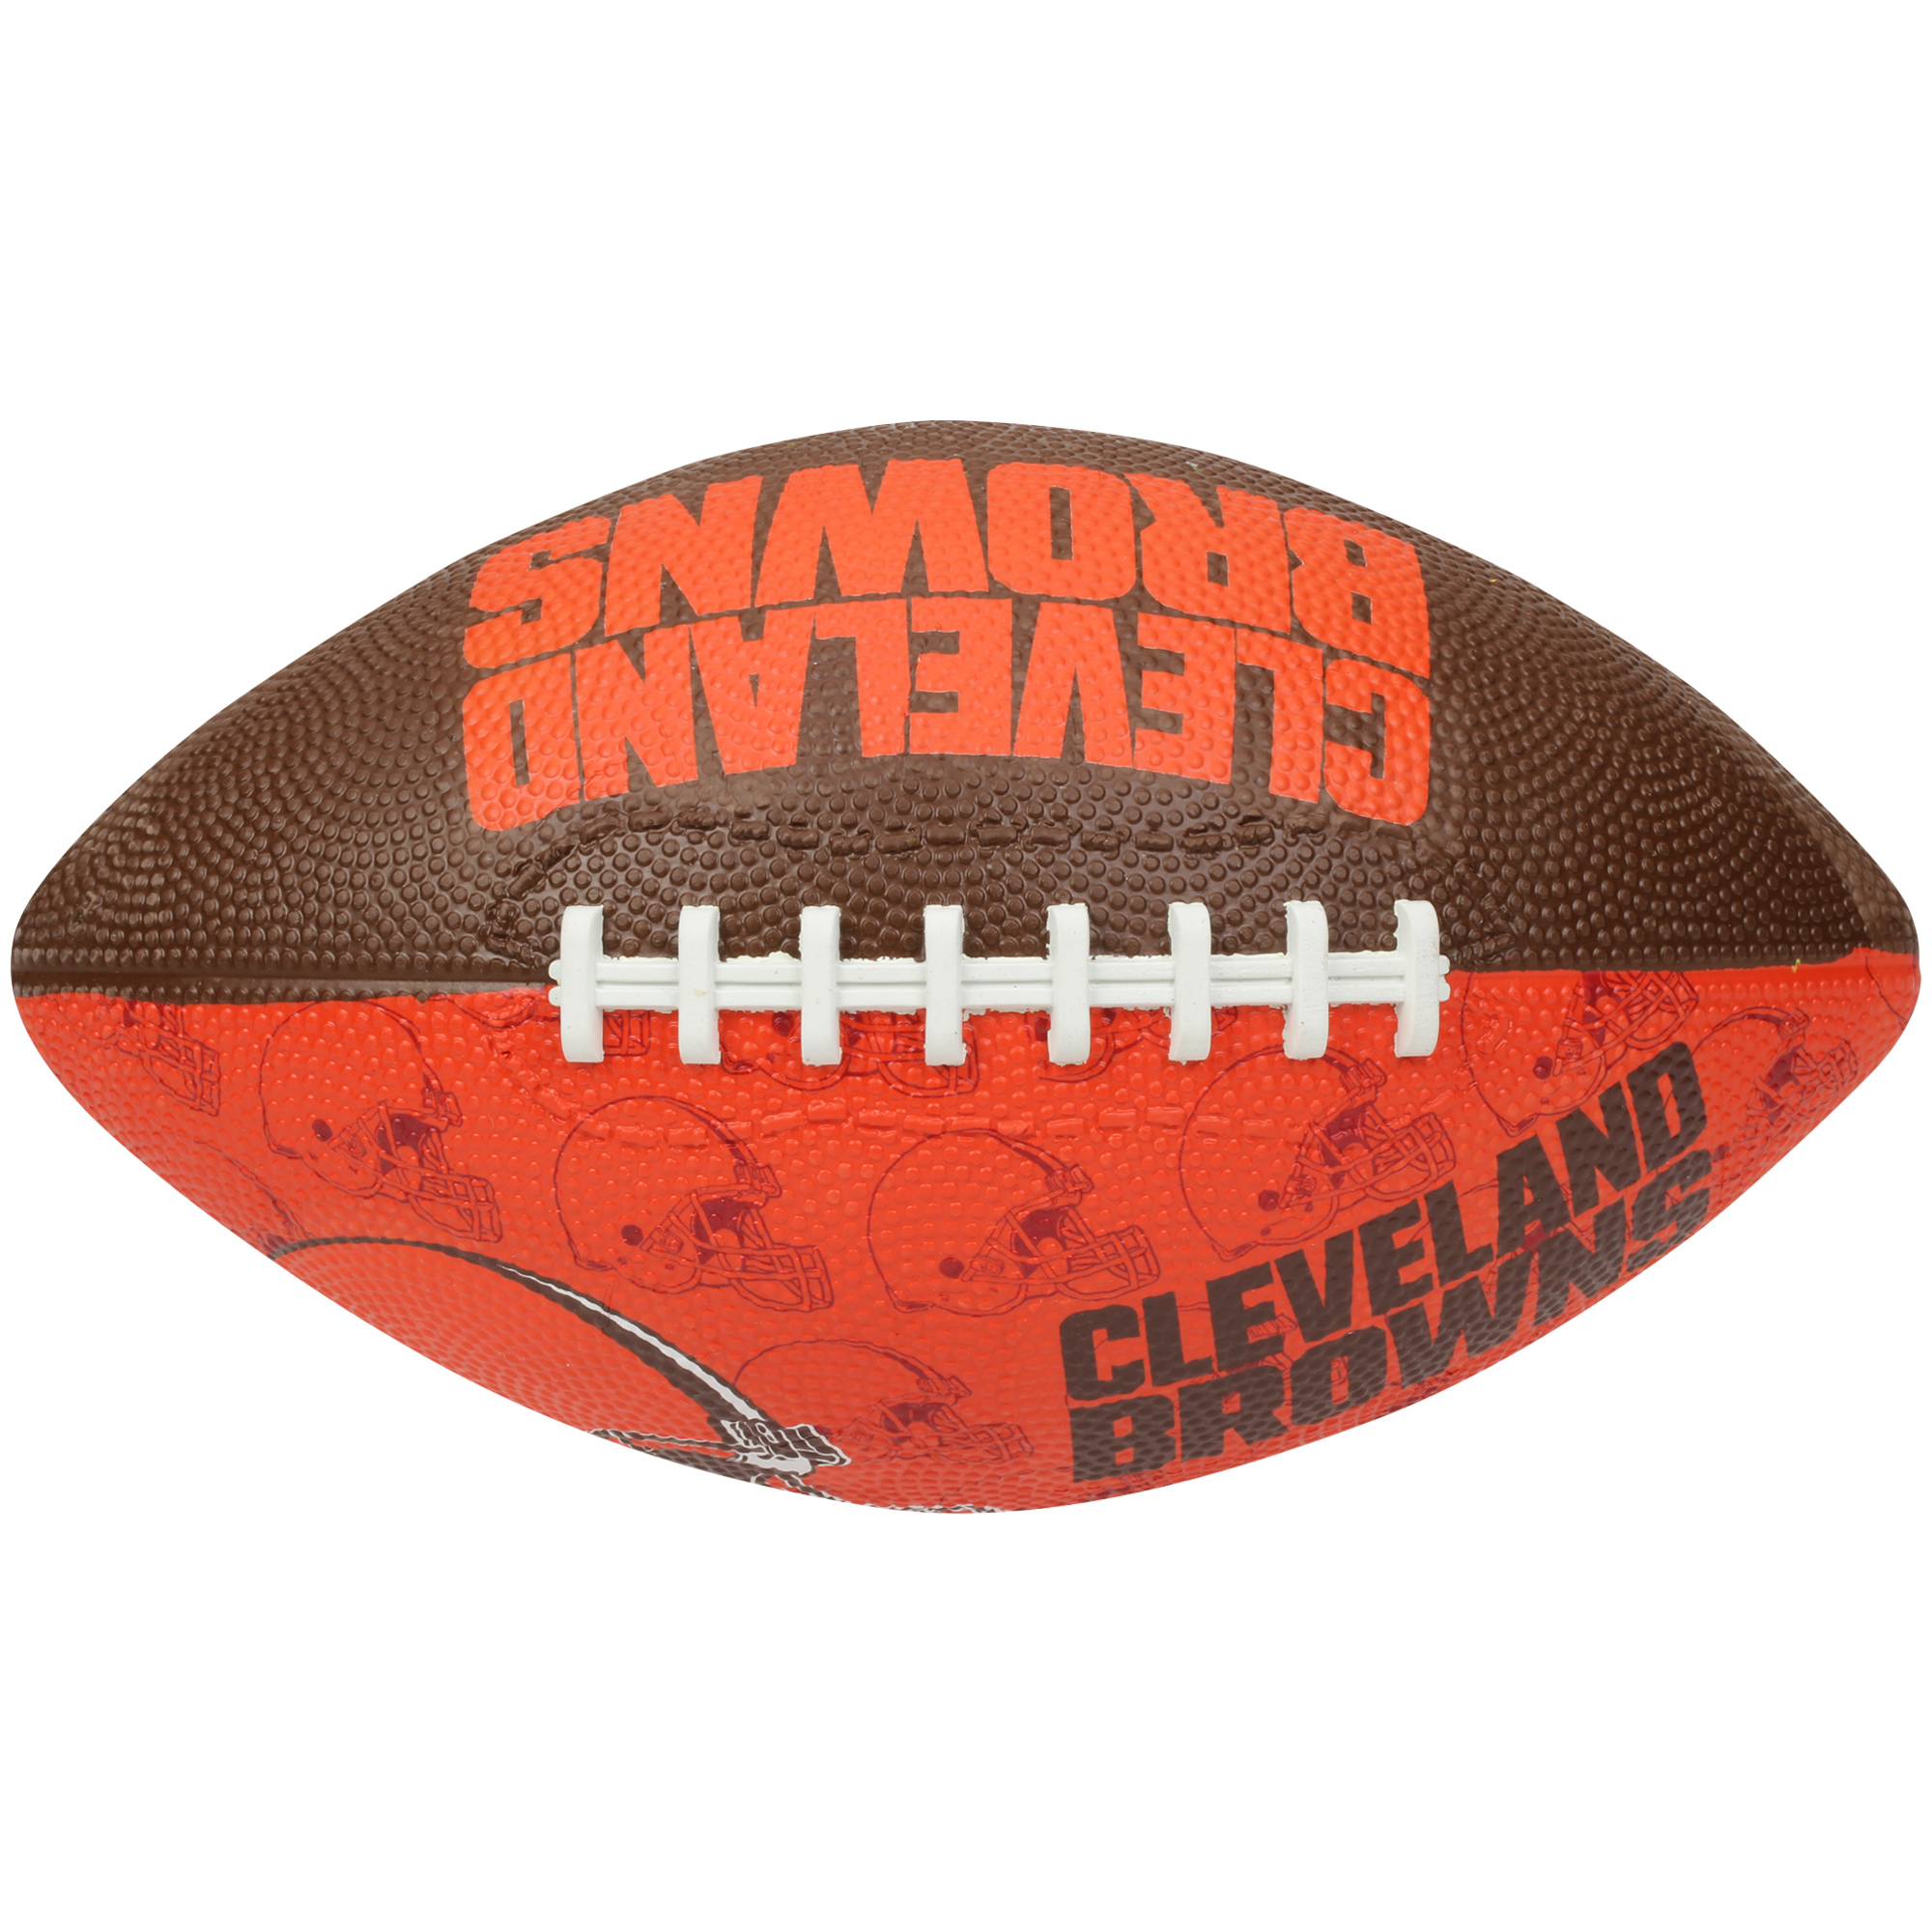 Cleveland Browns Gridiron Junior Size Football - No Size